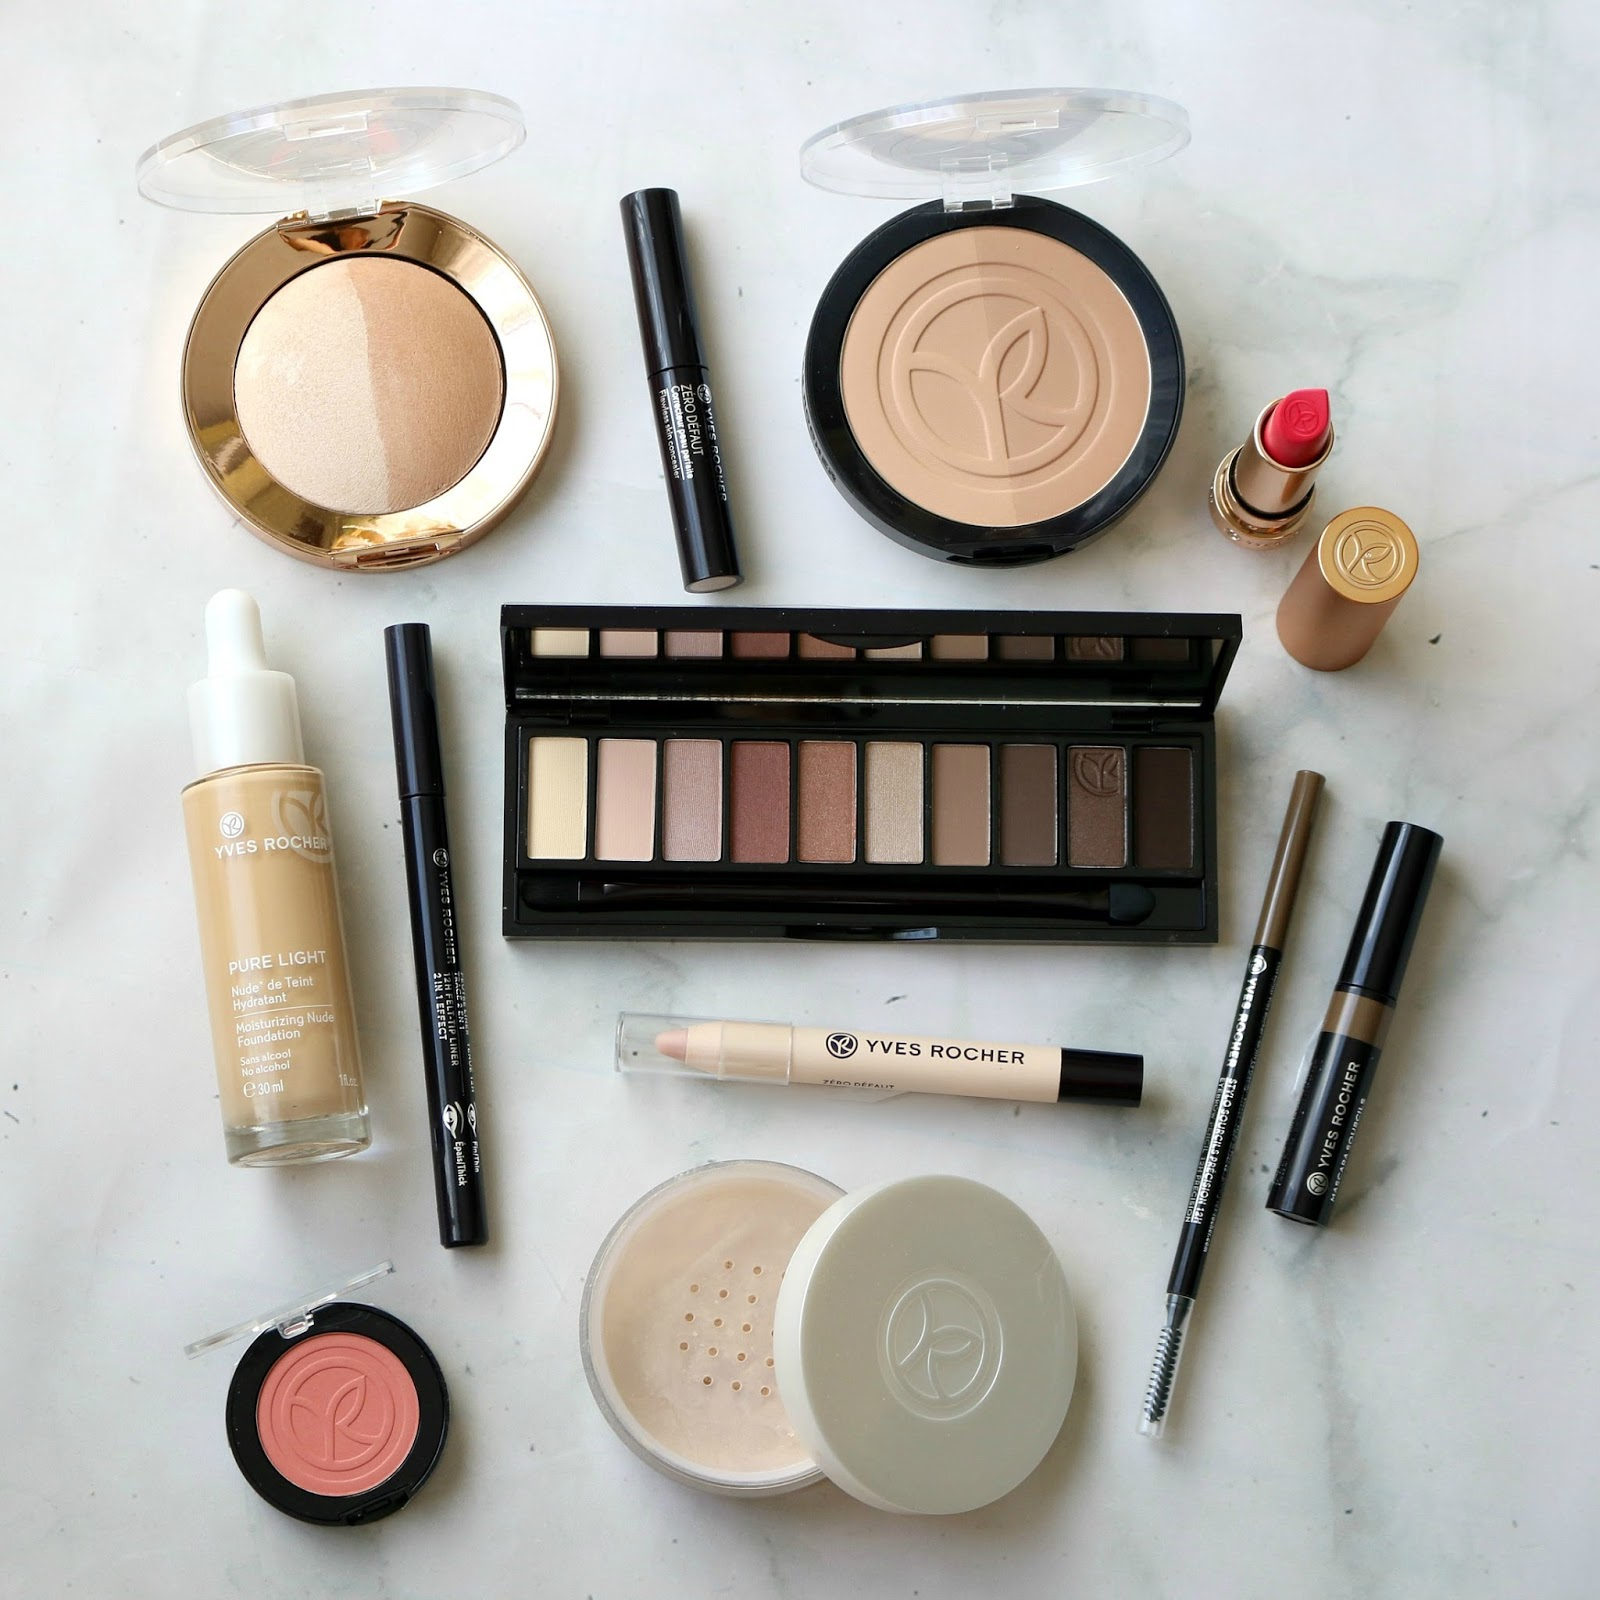 Yves Rocher Spring Makeup Look Products